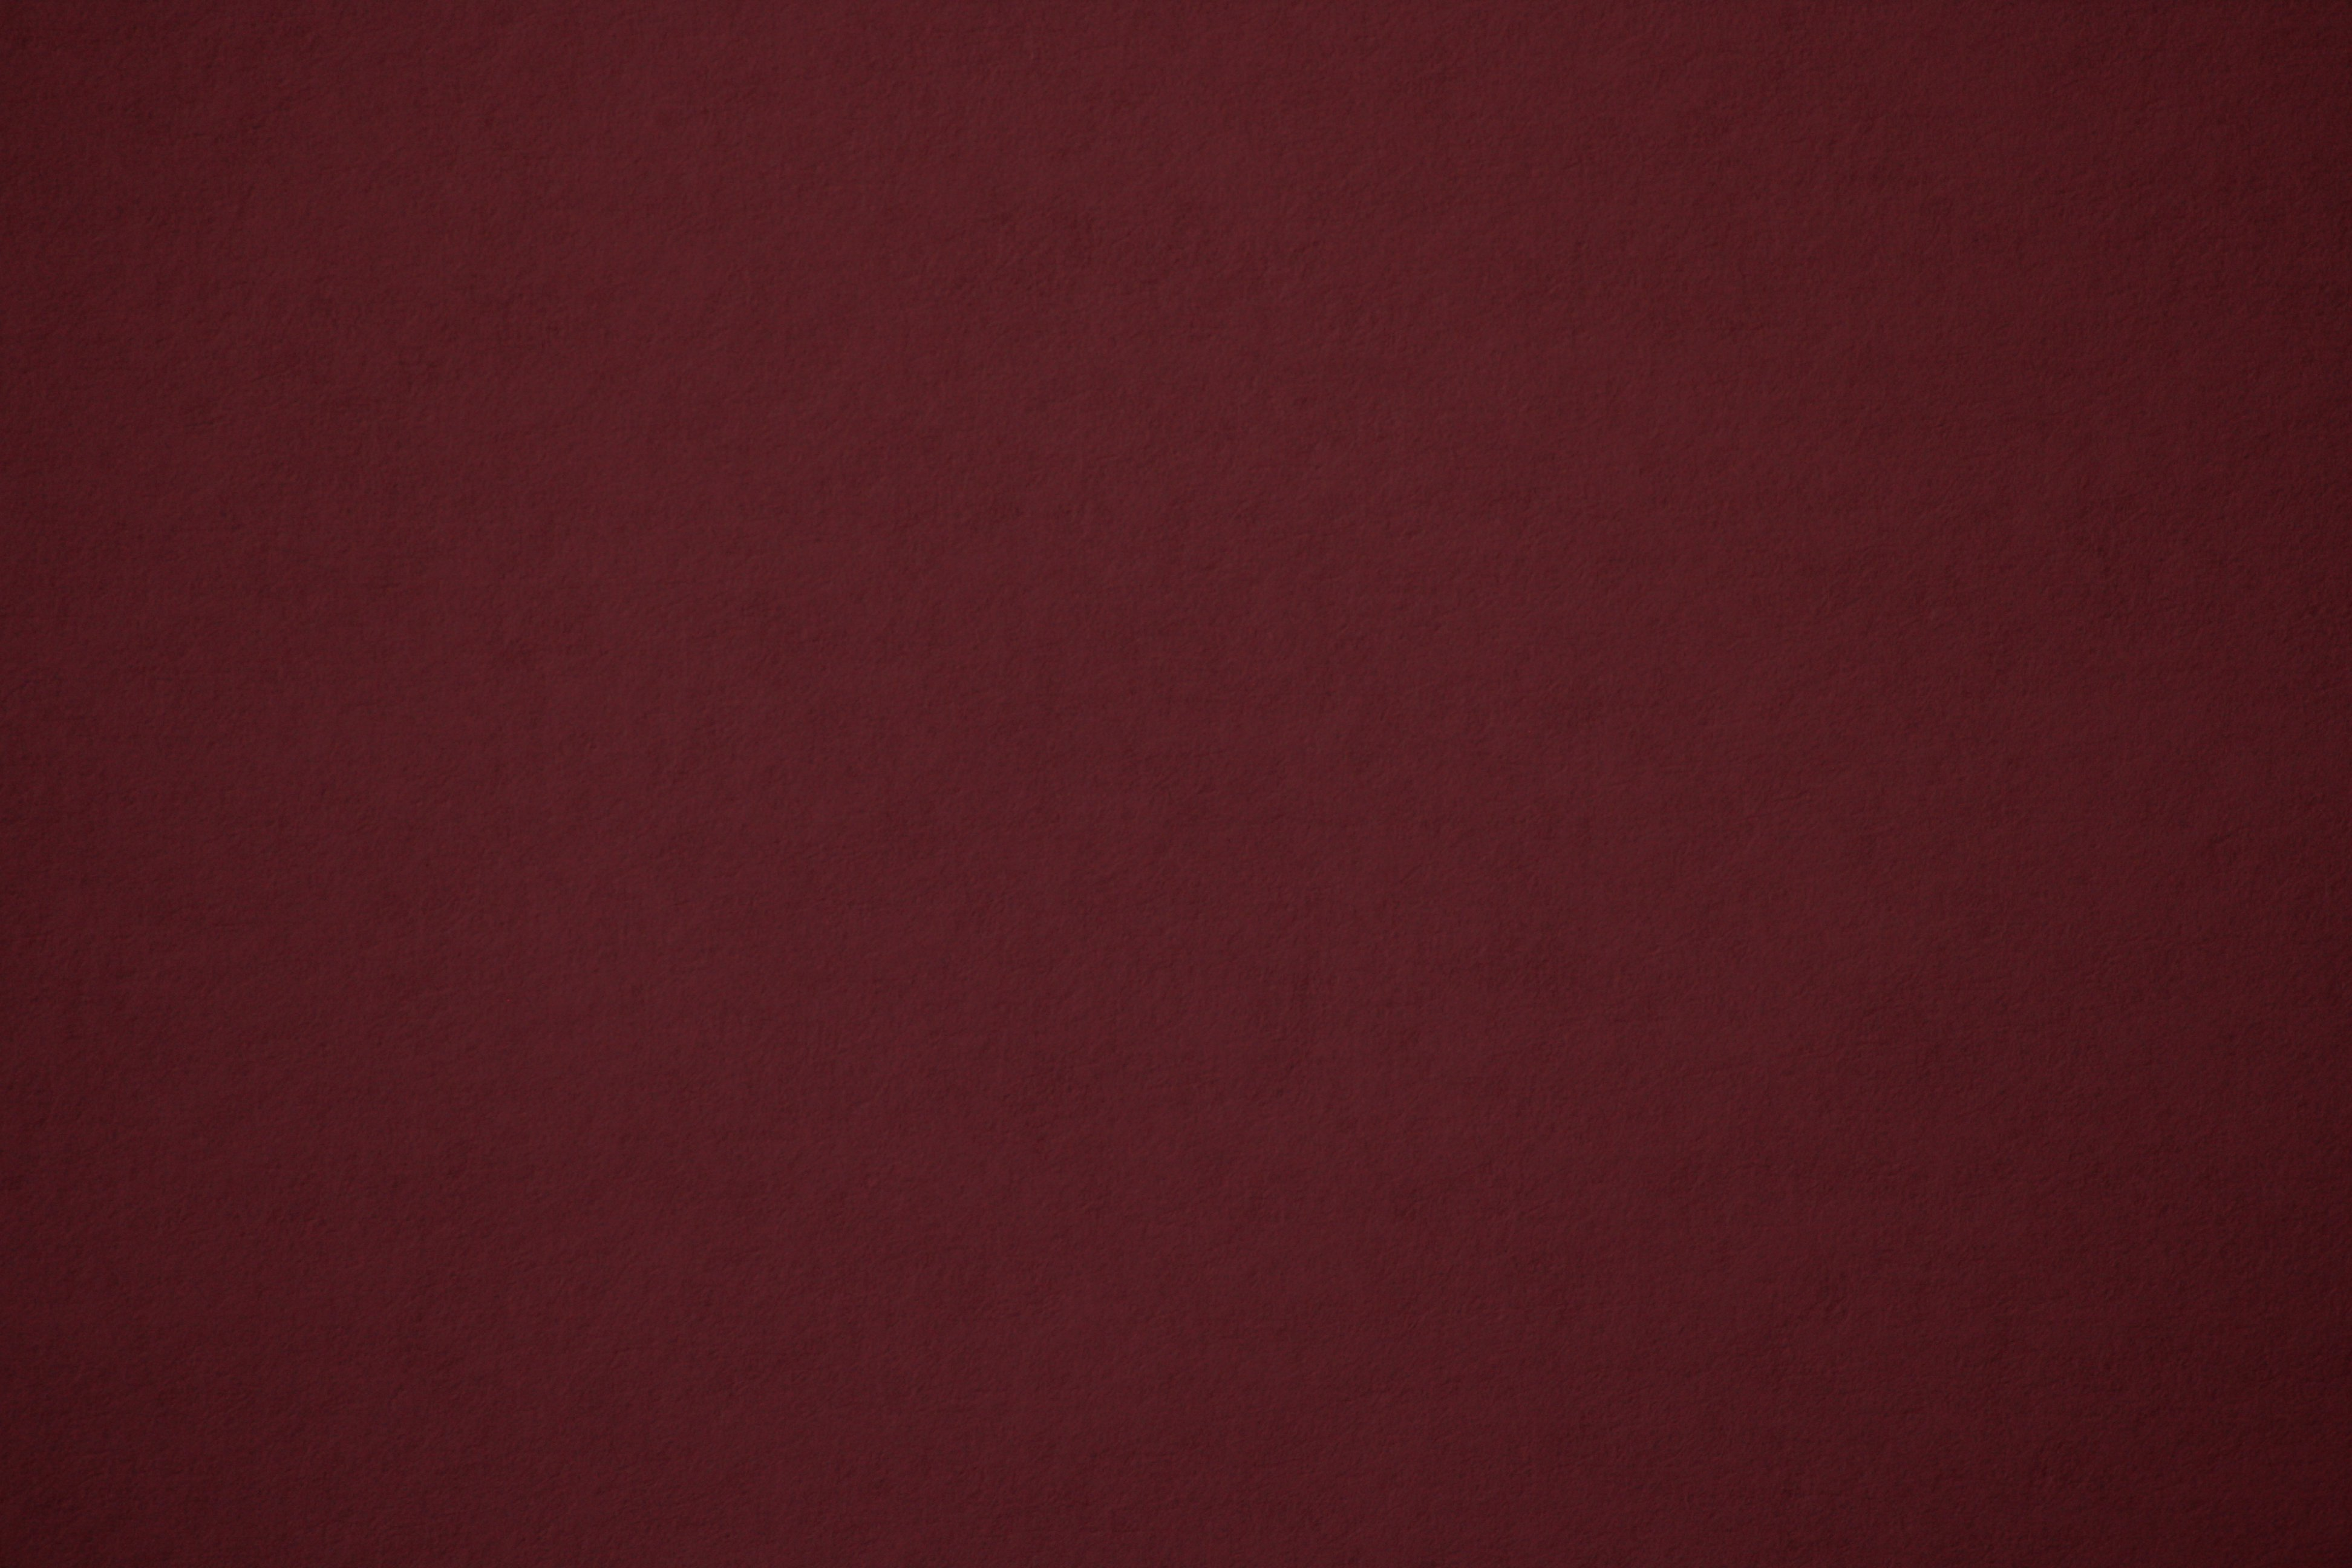 maroon paper texture picture free photograph photos public domain maroon paper texture picture free